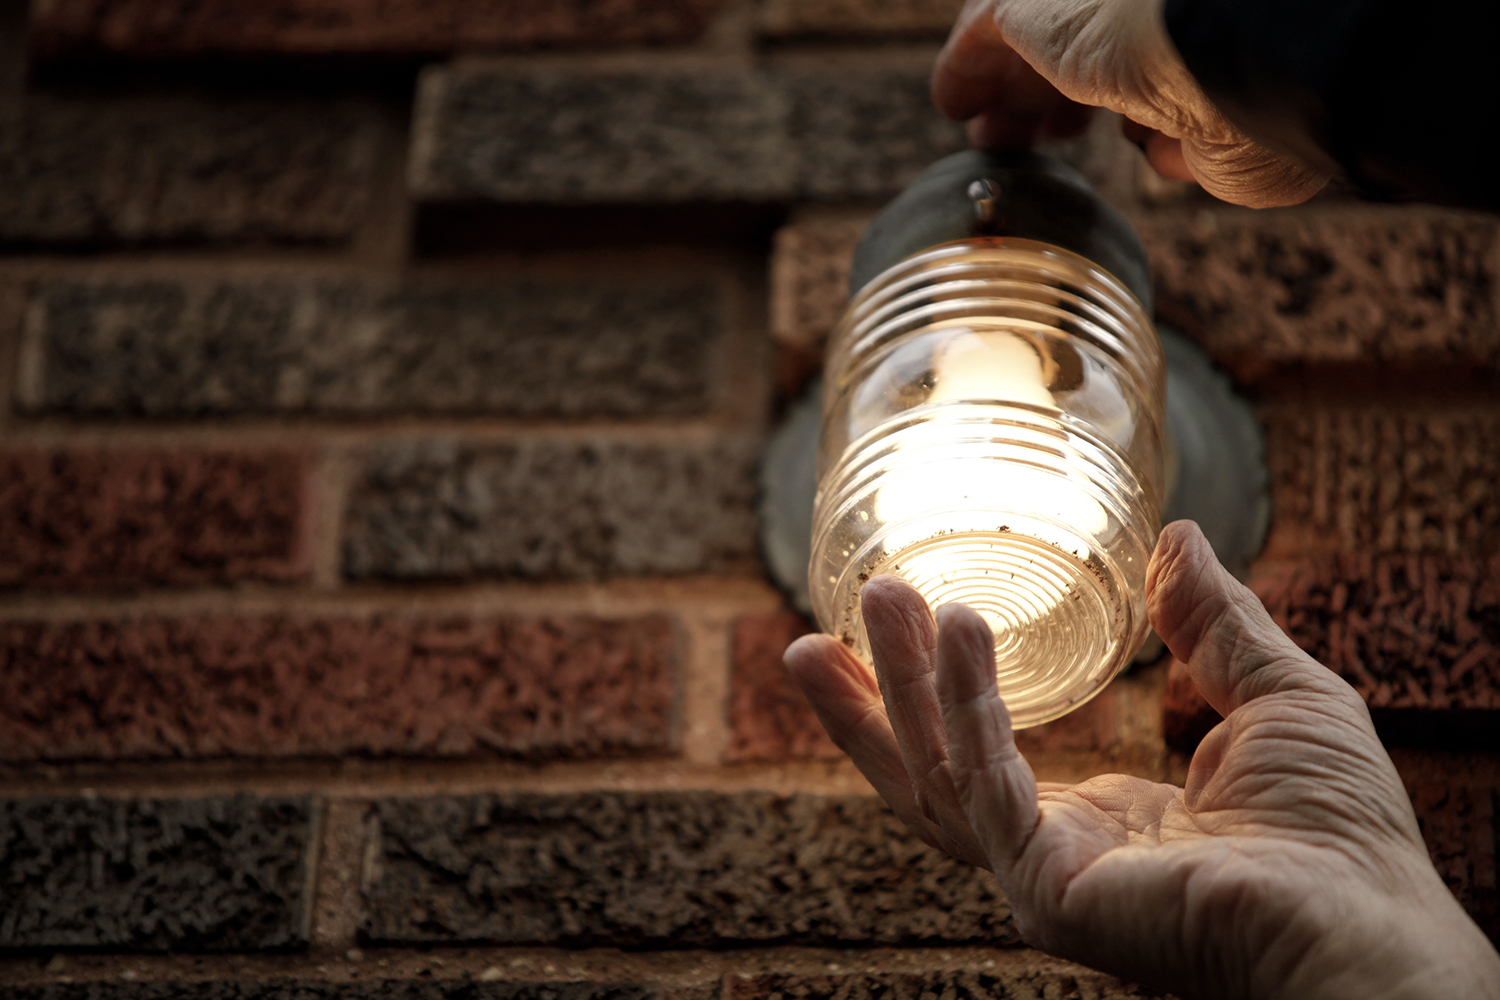 After putting in a new light bulb, Nick DiNunzio replaces the protective cover for the light on a home in his neighborhood on Monday, Oct. 28, 2013 in Detroit.  Tim Galloway / Special to DFP